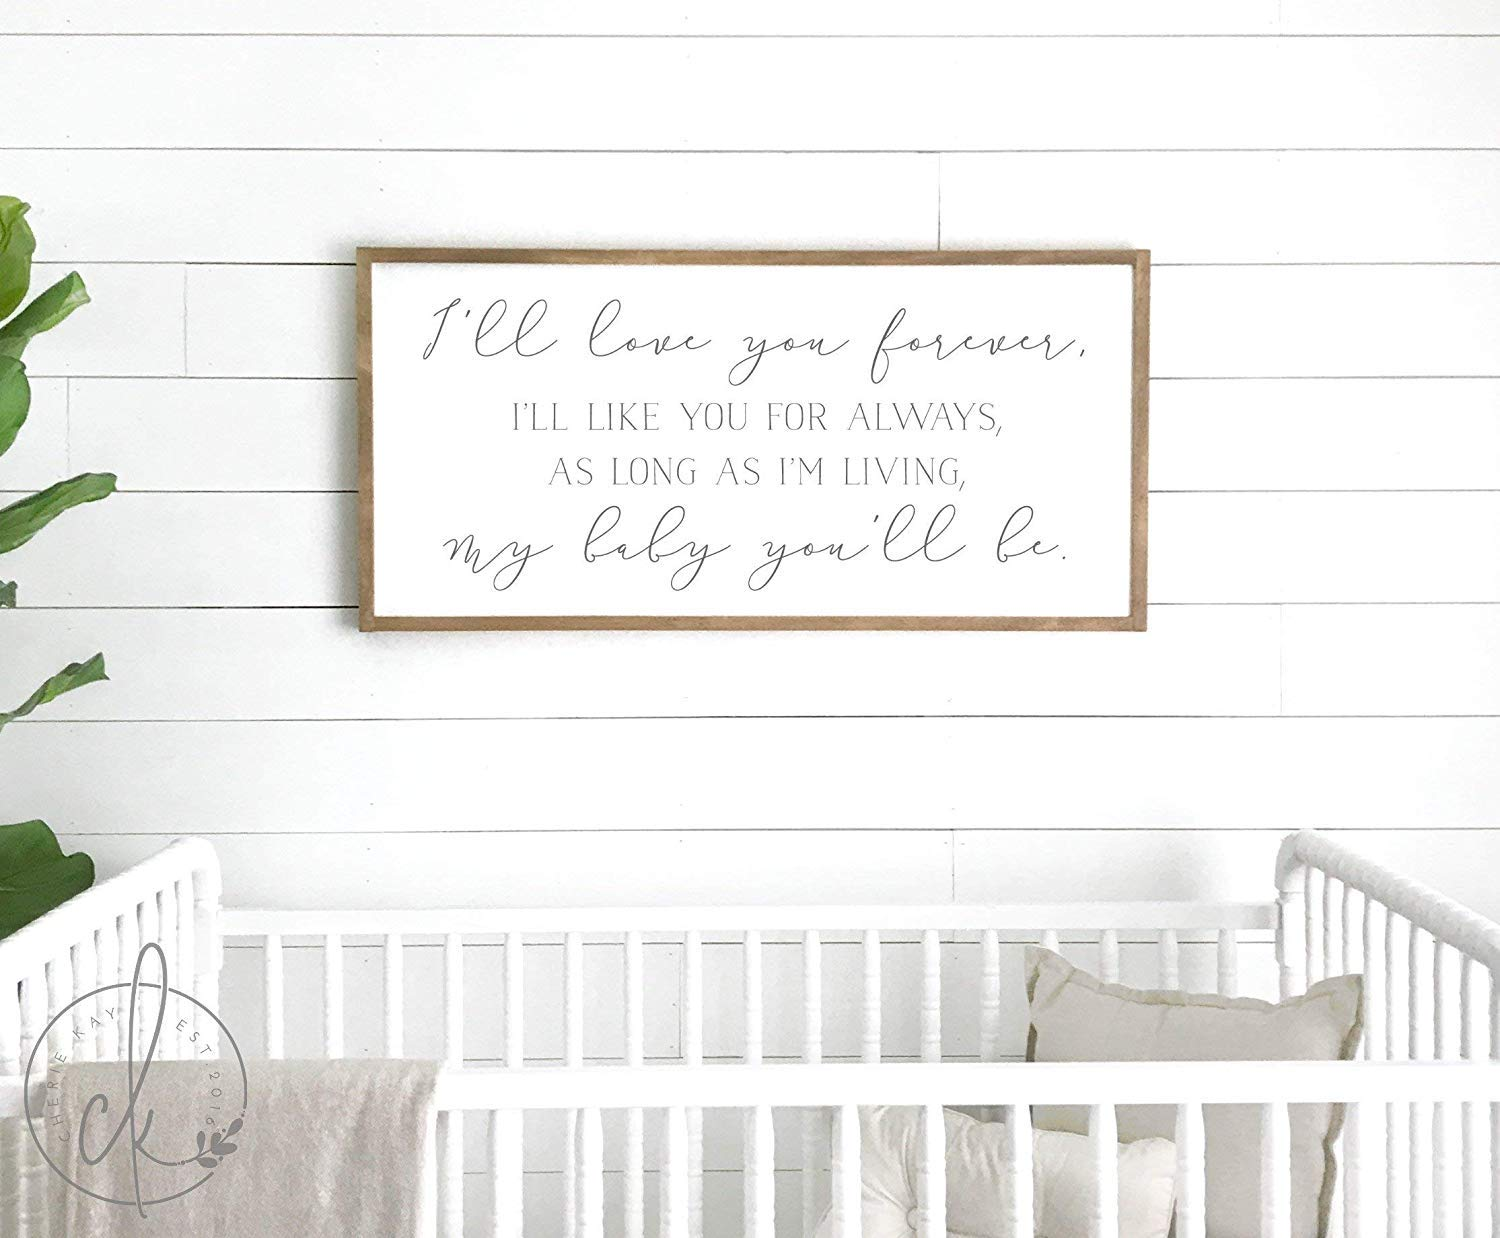 Nursery Room Sign | Ill Love You Forever Sign | Nursery Room Decor | Nursery Wall Decorations | Crib Sign | Sign Above Crib by Framed Sign